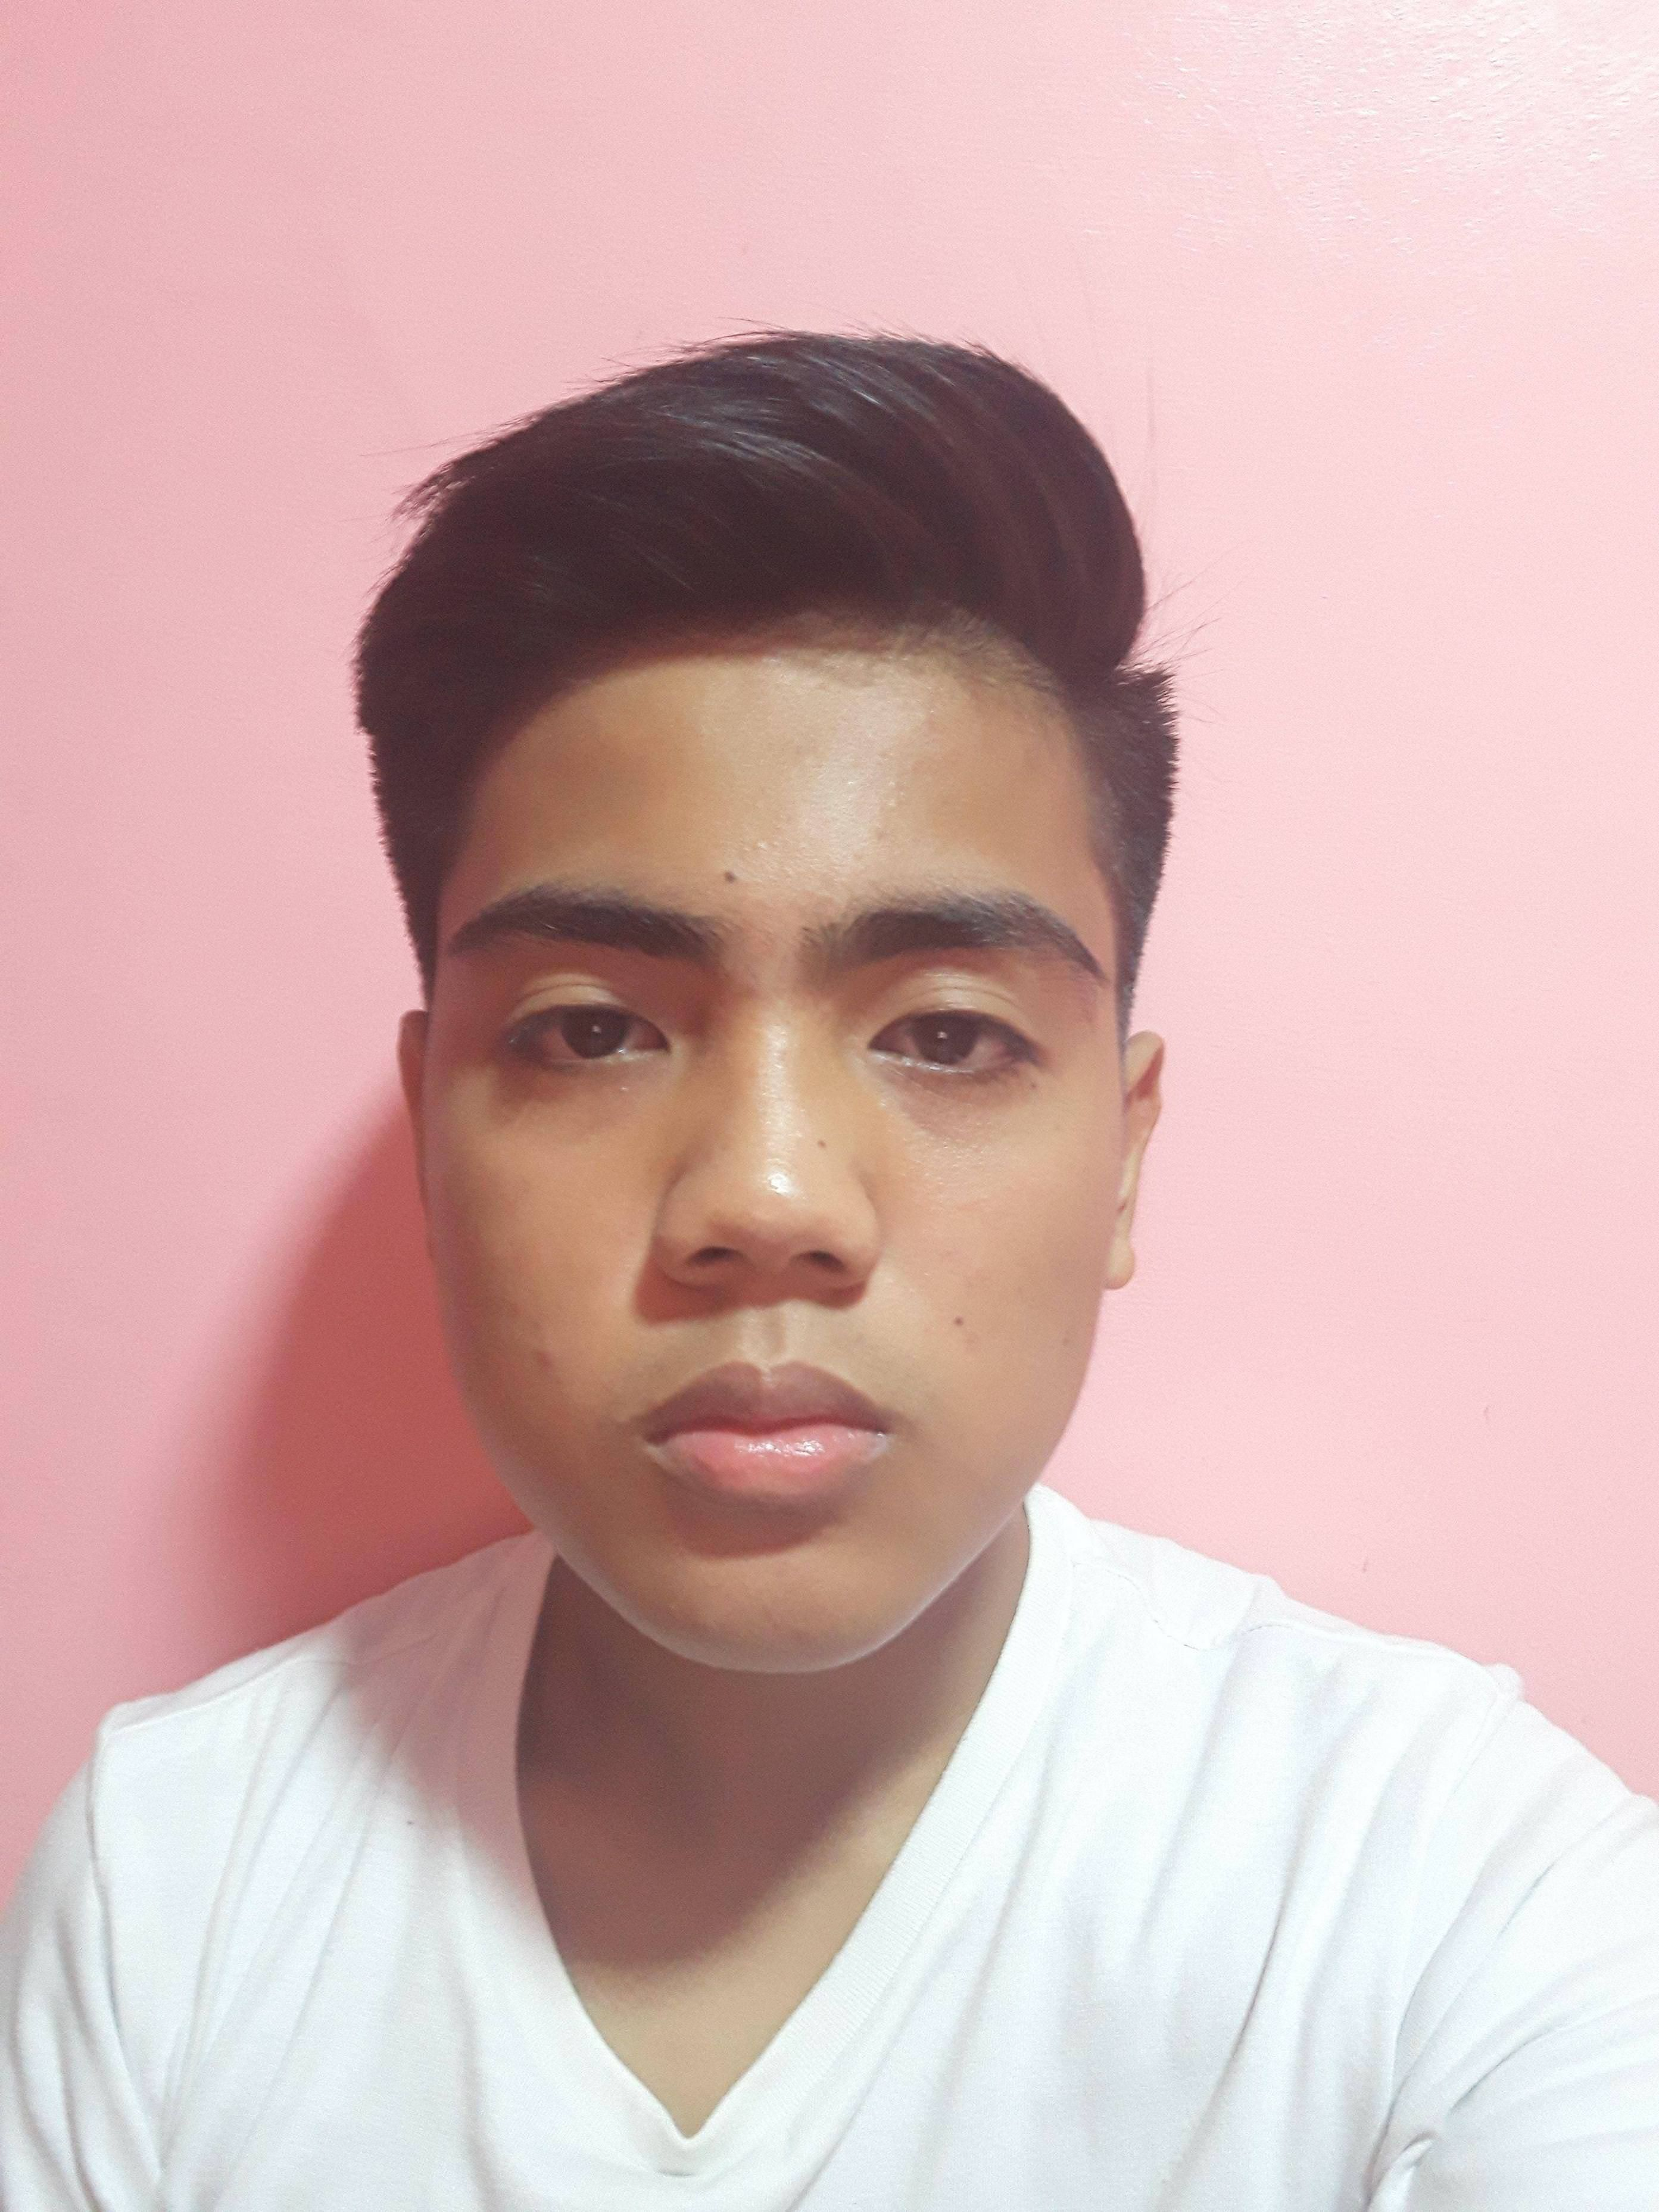 Haircut for men according to face shape can anyone tell me my face shape and if this hairstyle fits me